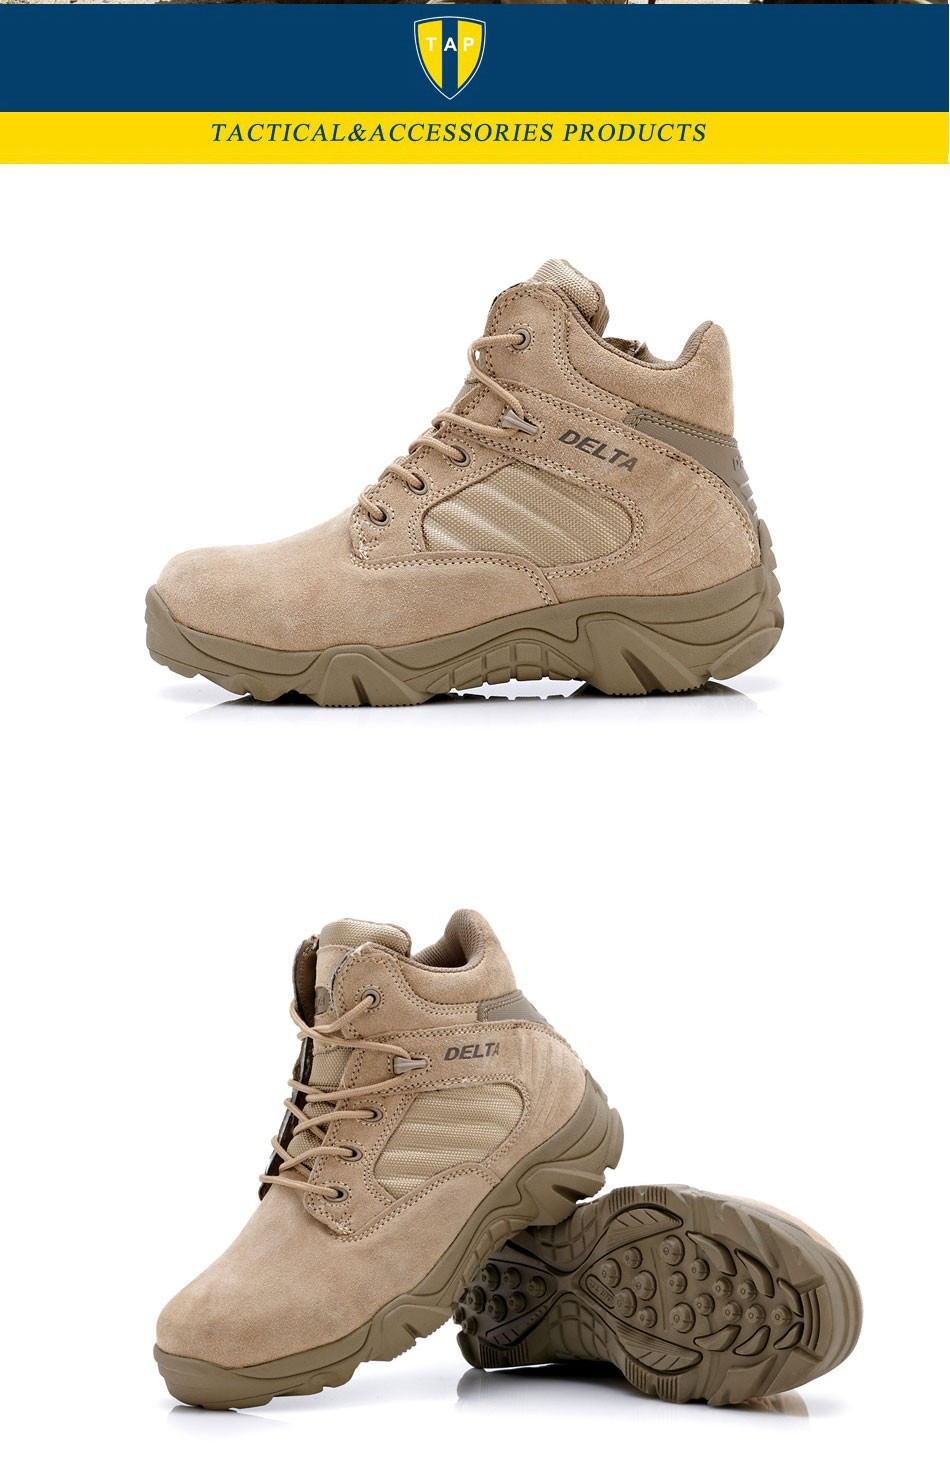 Delta Brand Military Tactical Boots Desert Combat Outdoor Army Hiking